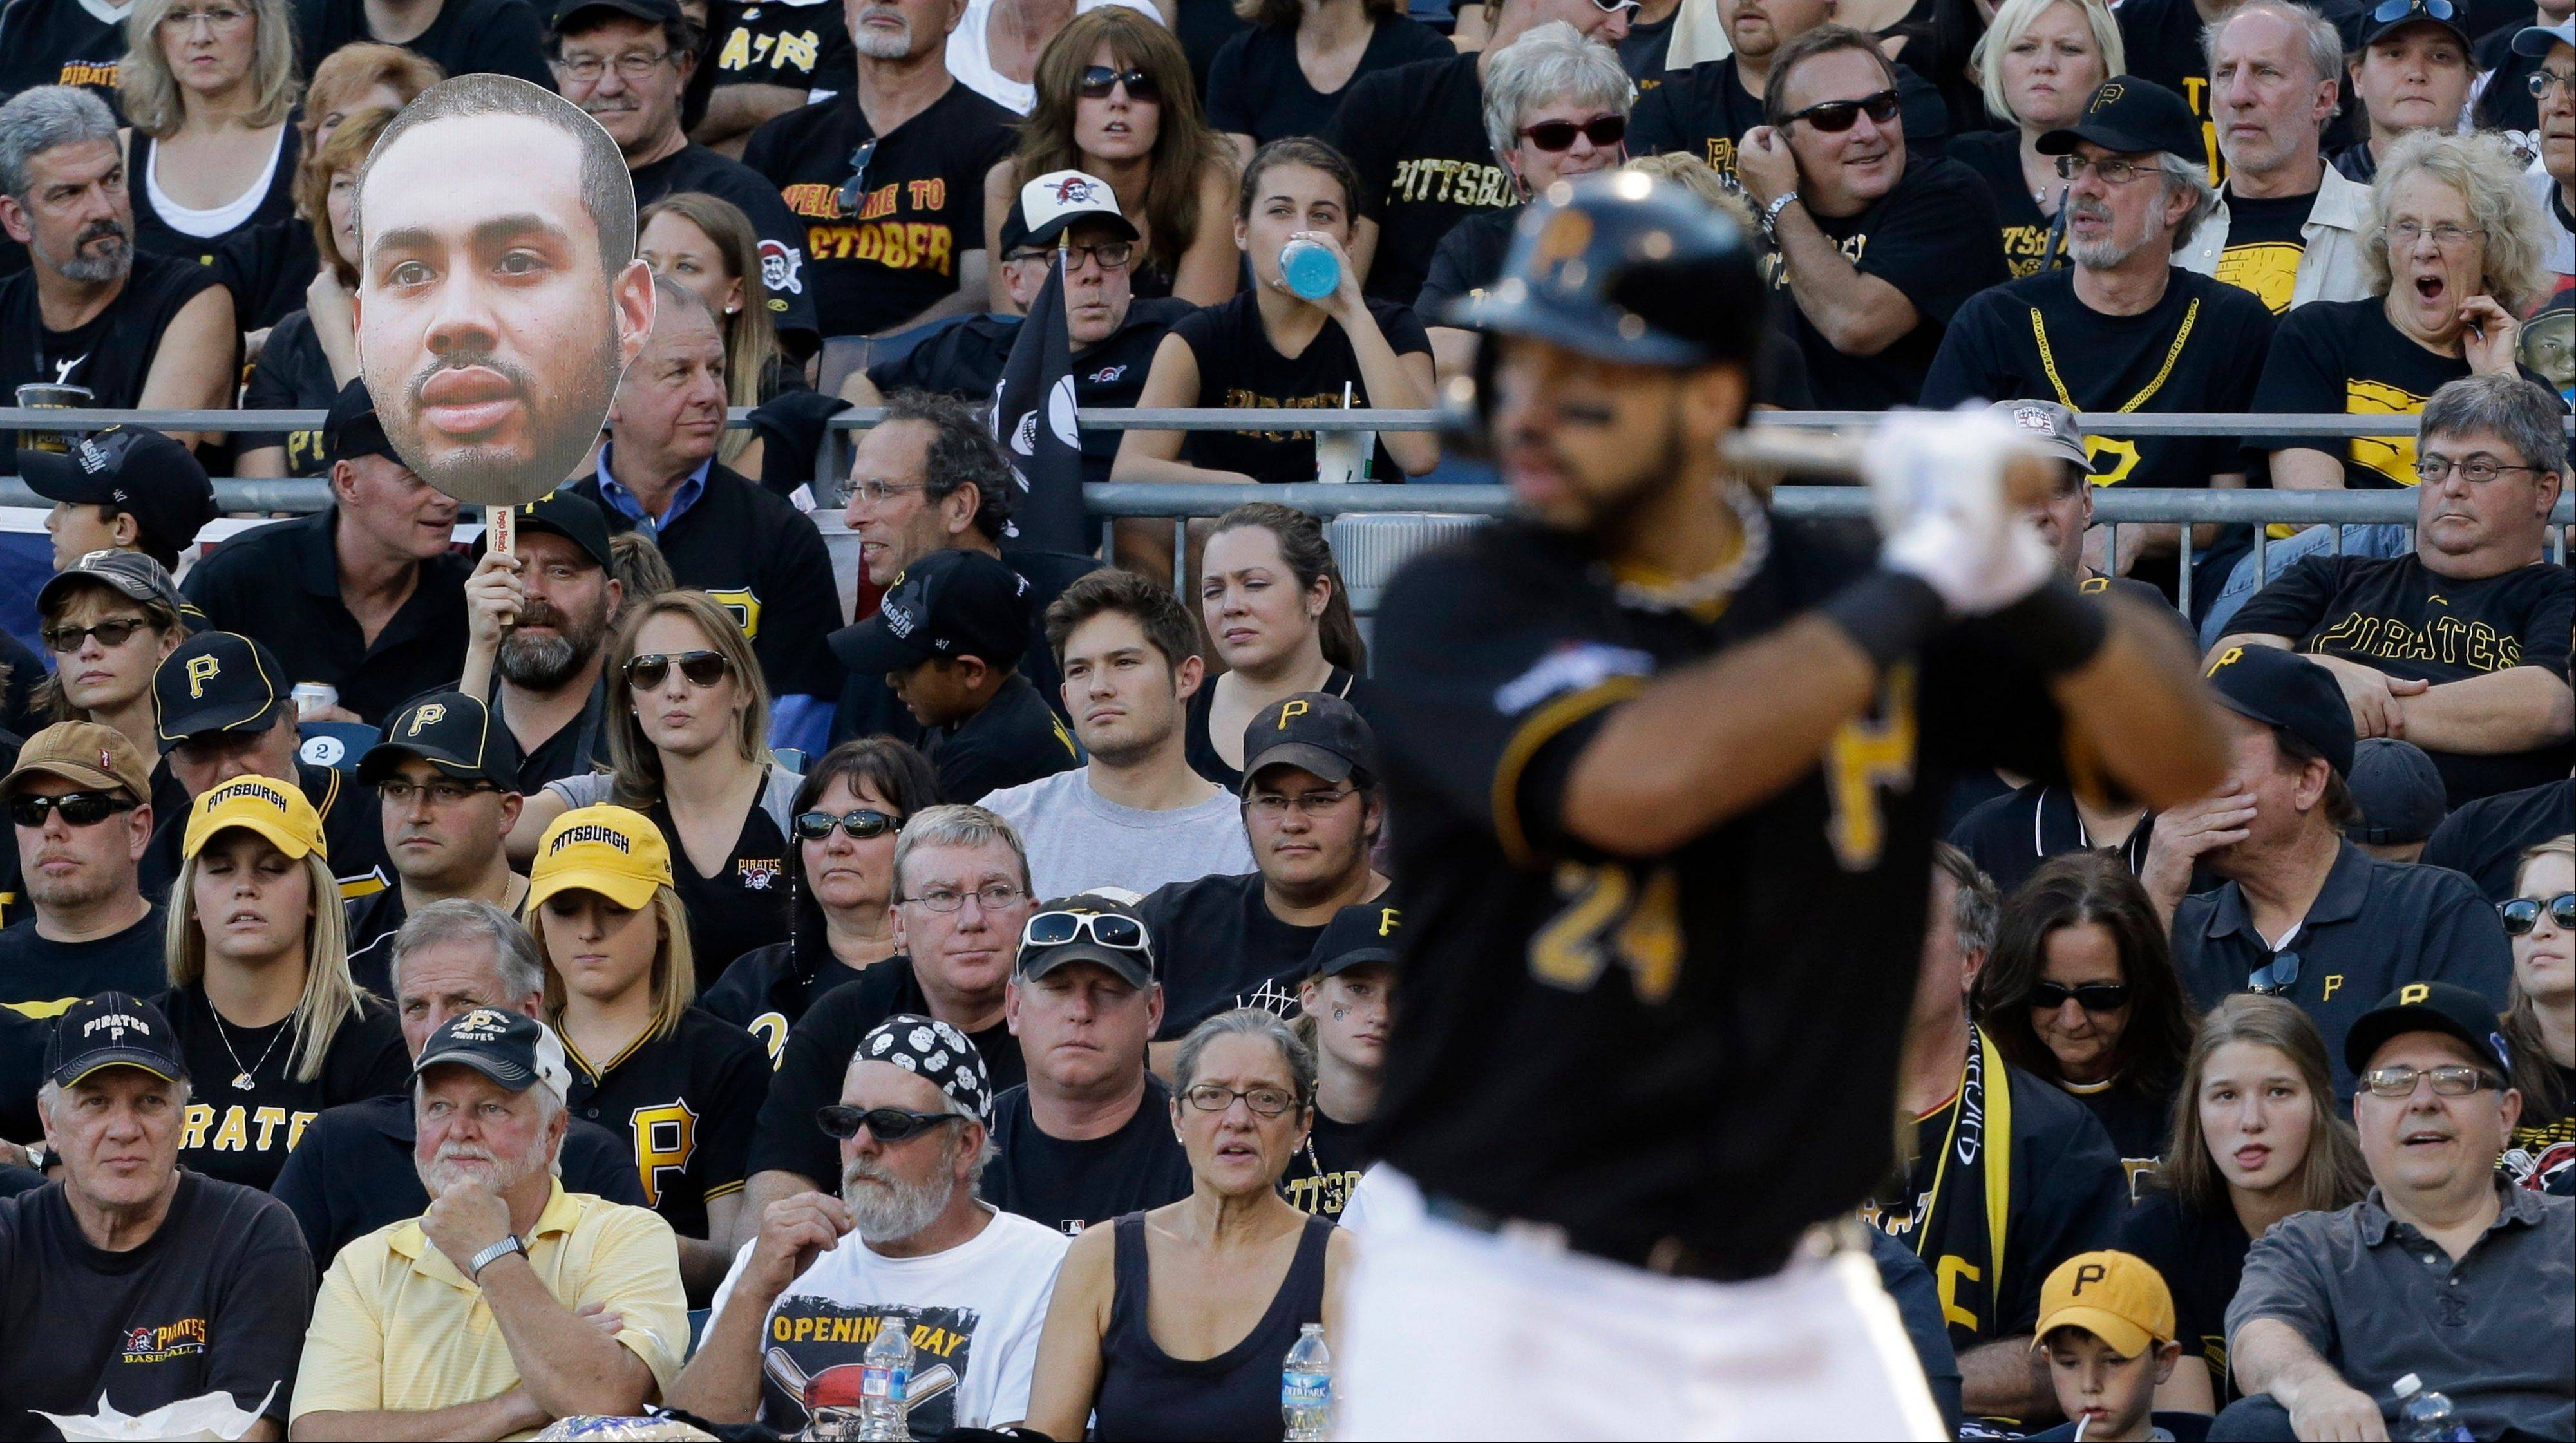 A fan holds a giant poster photo of Pittsburgh Pirates� Pedro Alvarez, left, as he bats in the fourth inning of Game 3 of a National League division baseball series against the St. Louis Cardinals on Sunday, Oct. 6, 2013 in Pittsburgh.